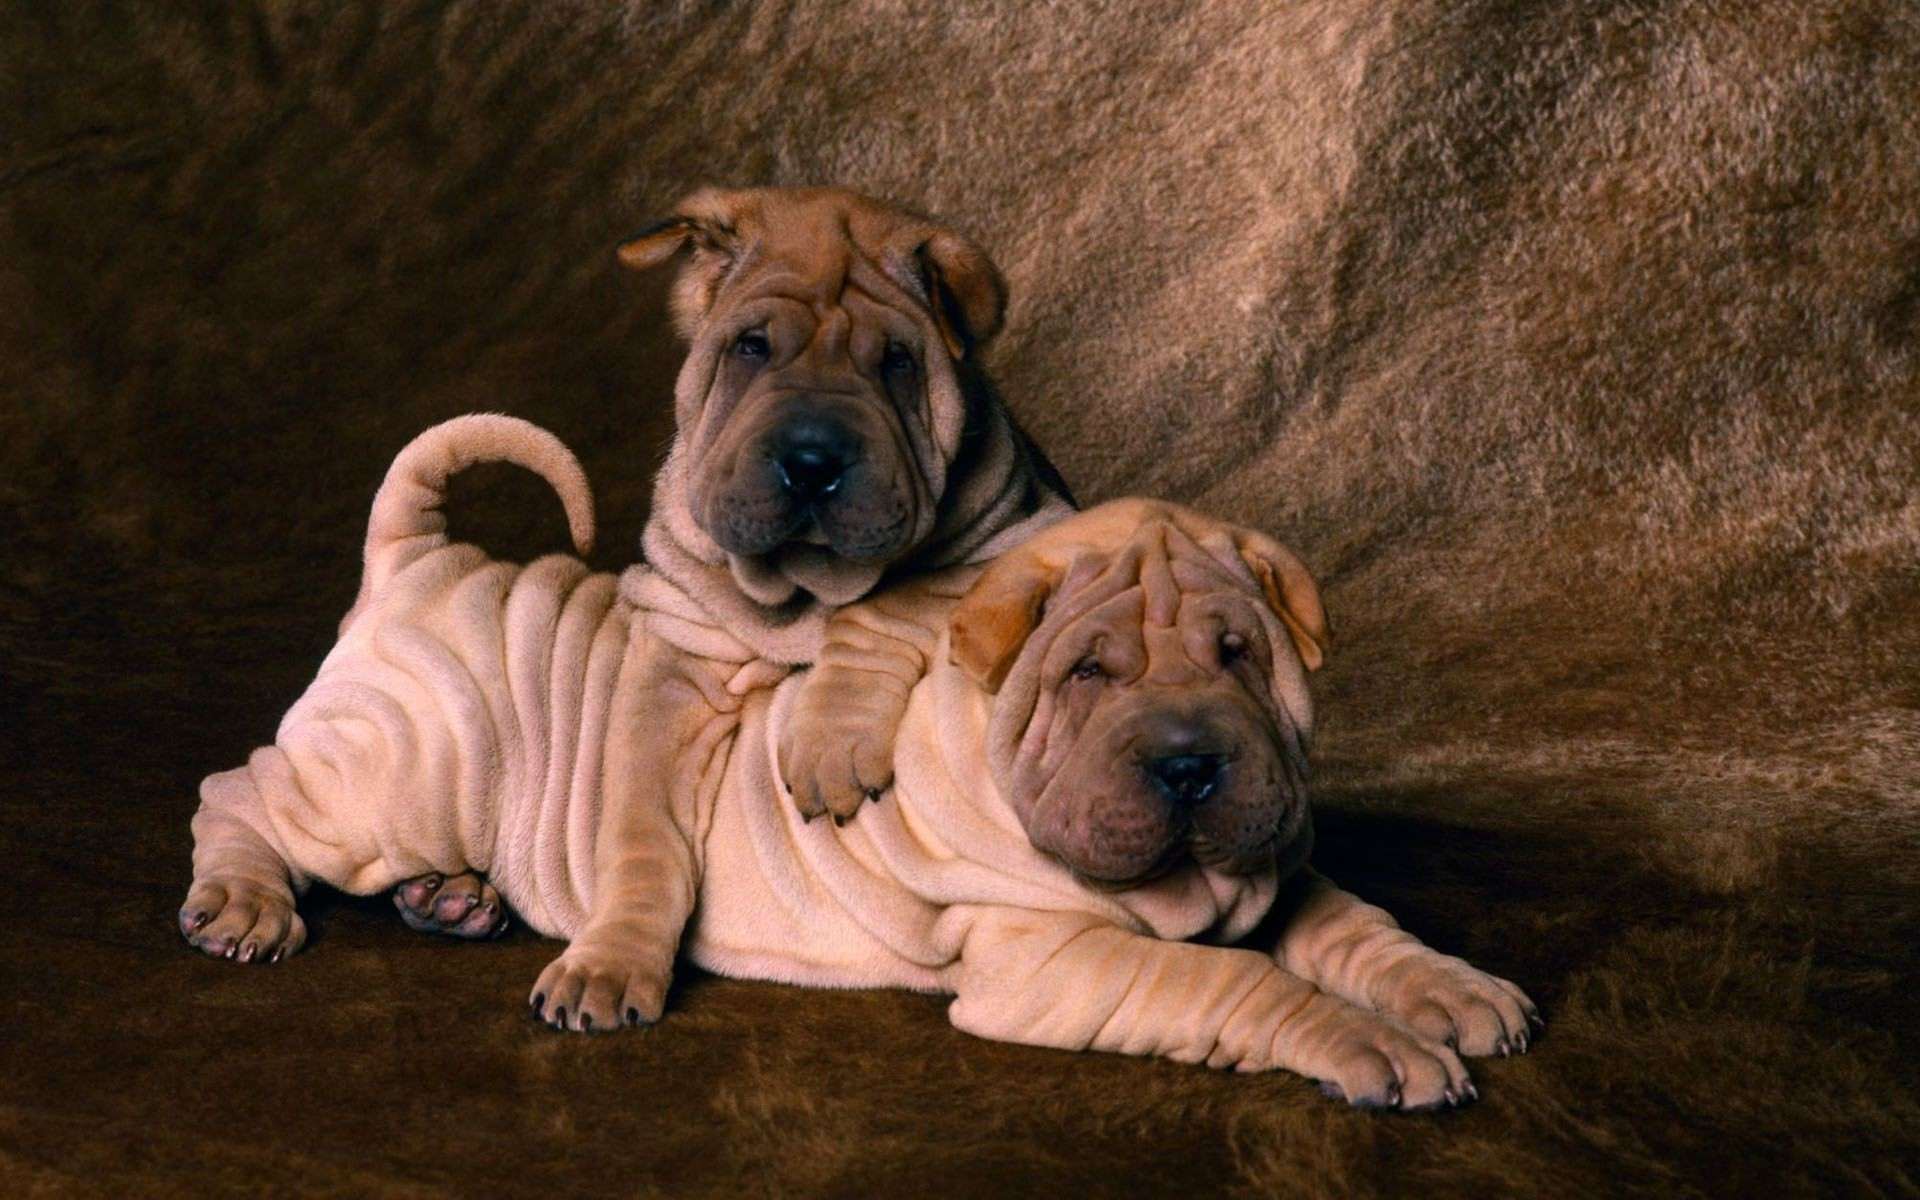 Two cute Shar Pei